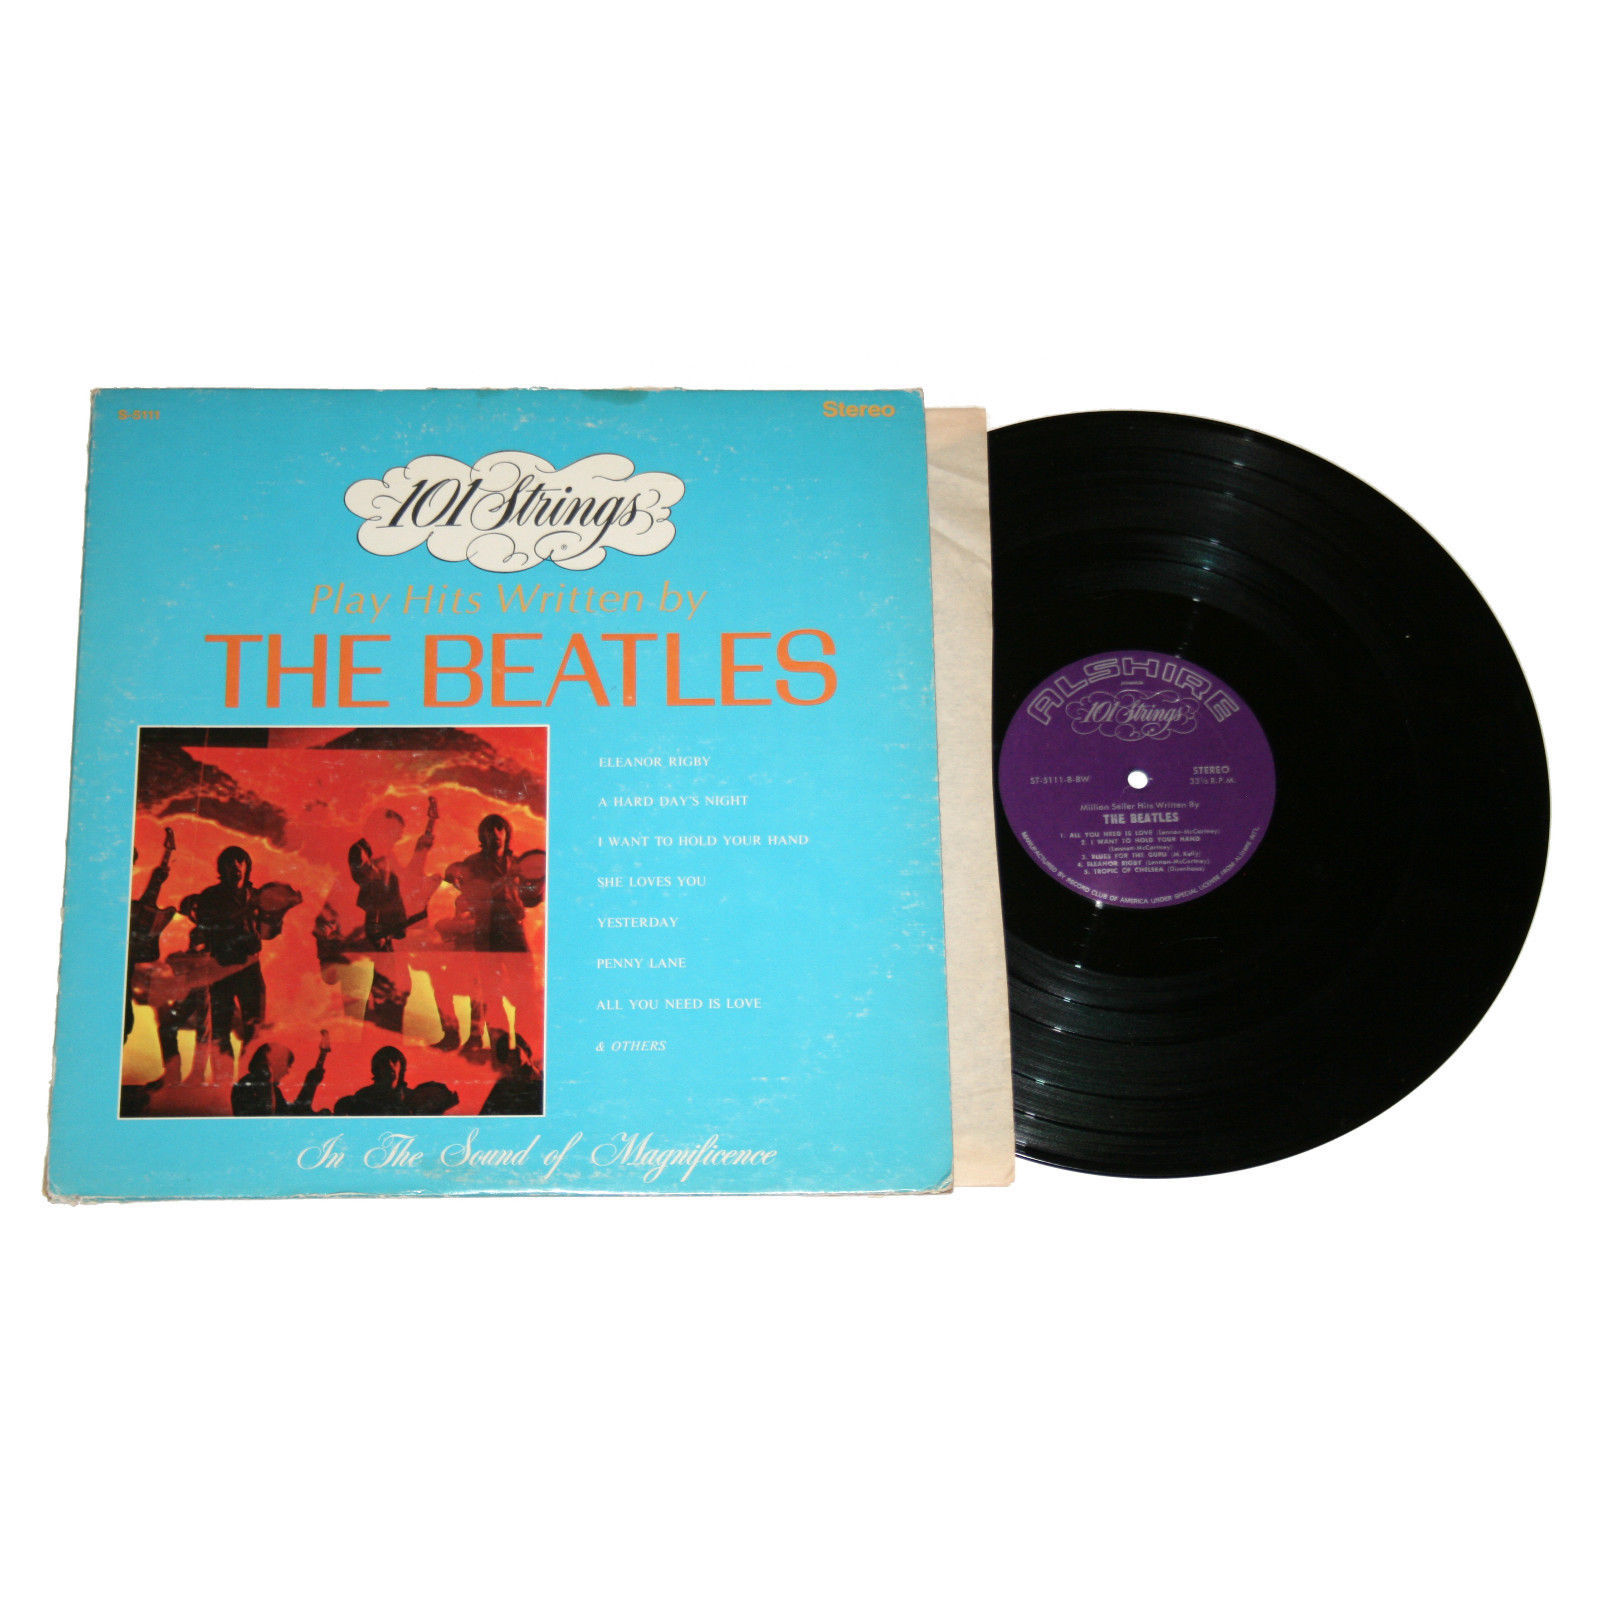 101 Strings Play Hits Written by The Beatles, released in January 1981, marked the final 101 Strings effort.